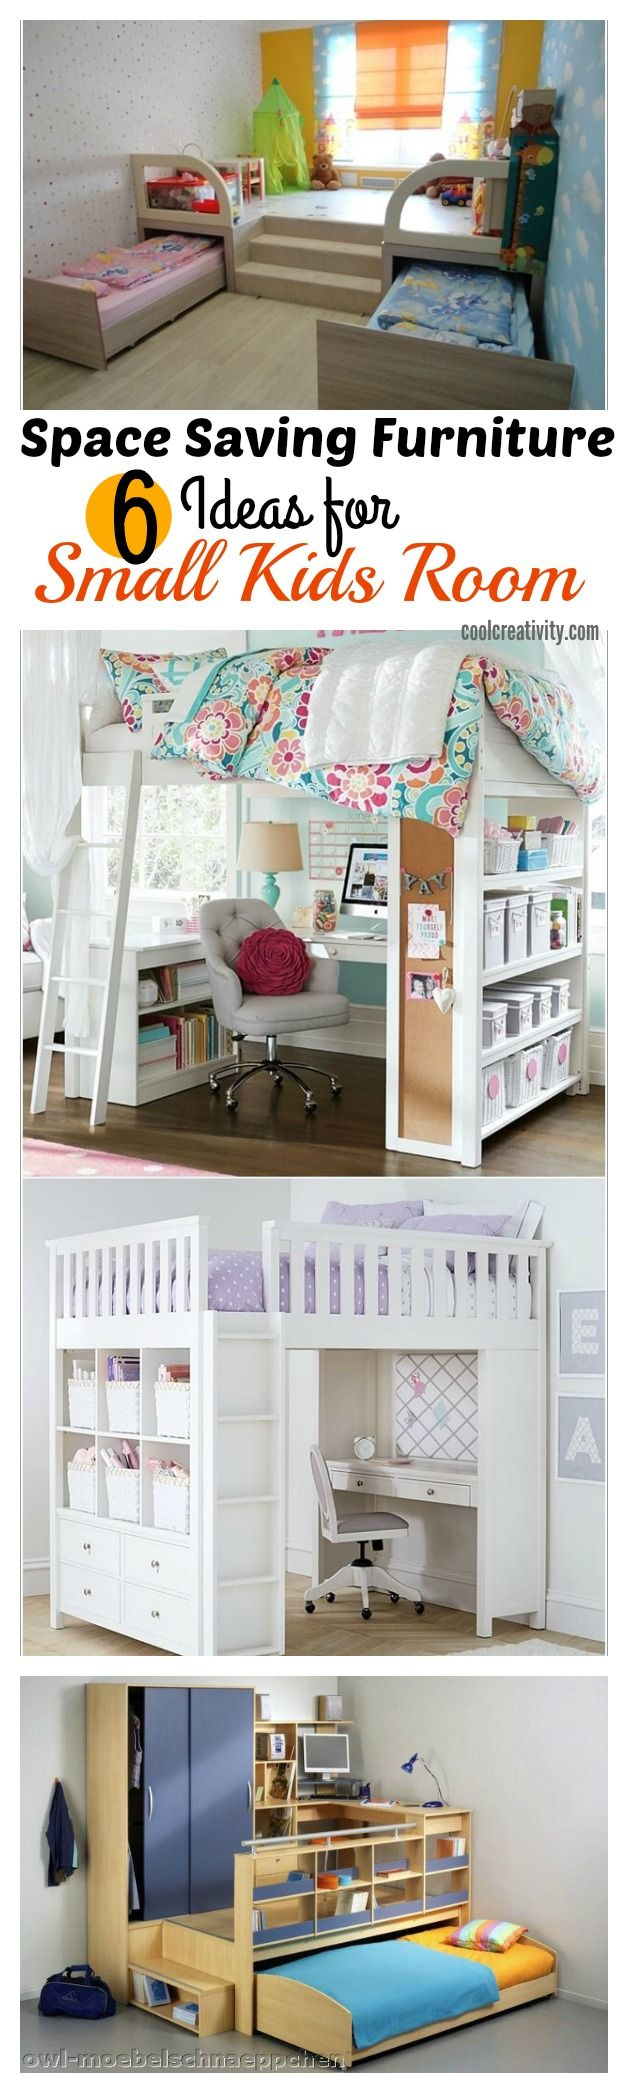 6 Space Saving Furniture Ideas For Small Kids Room 2 0 Pinterest Dormitorio Camas Y Ideas